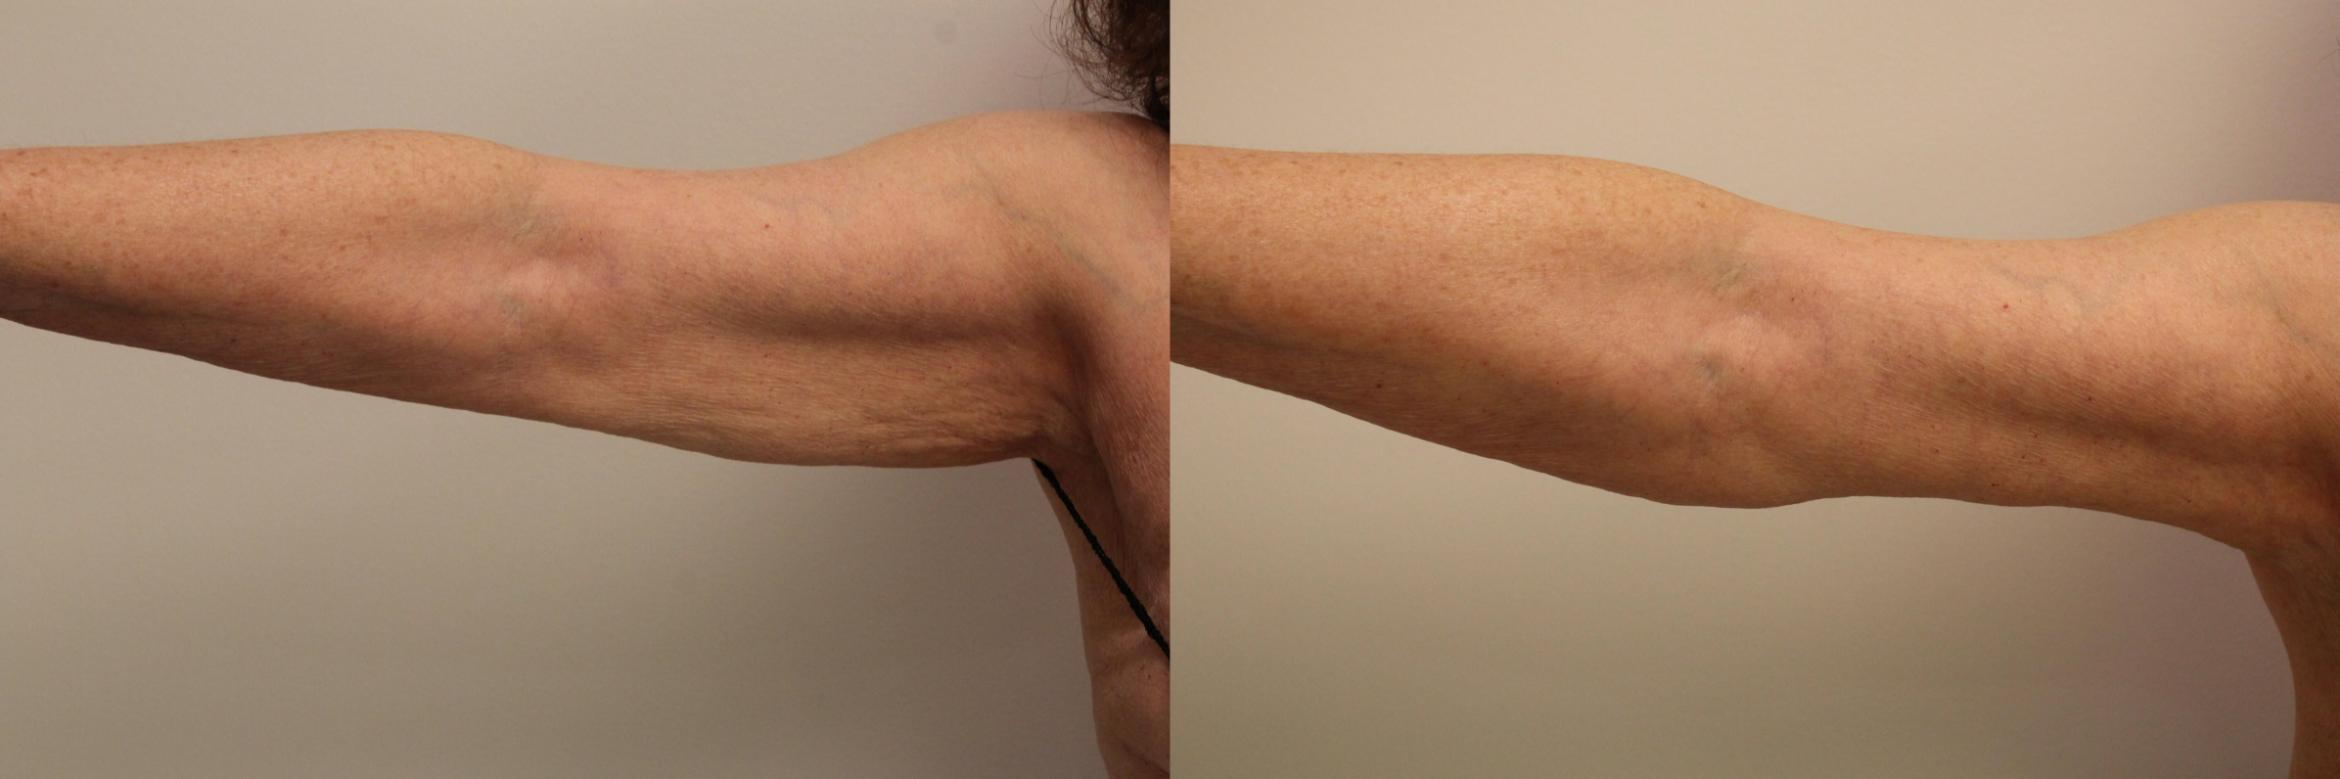 Arm Lift (Brachioplasty) Case 112 Before & After Front | Barrington, Illinois | Renee Burke, MD